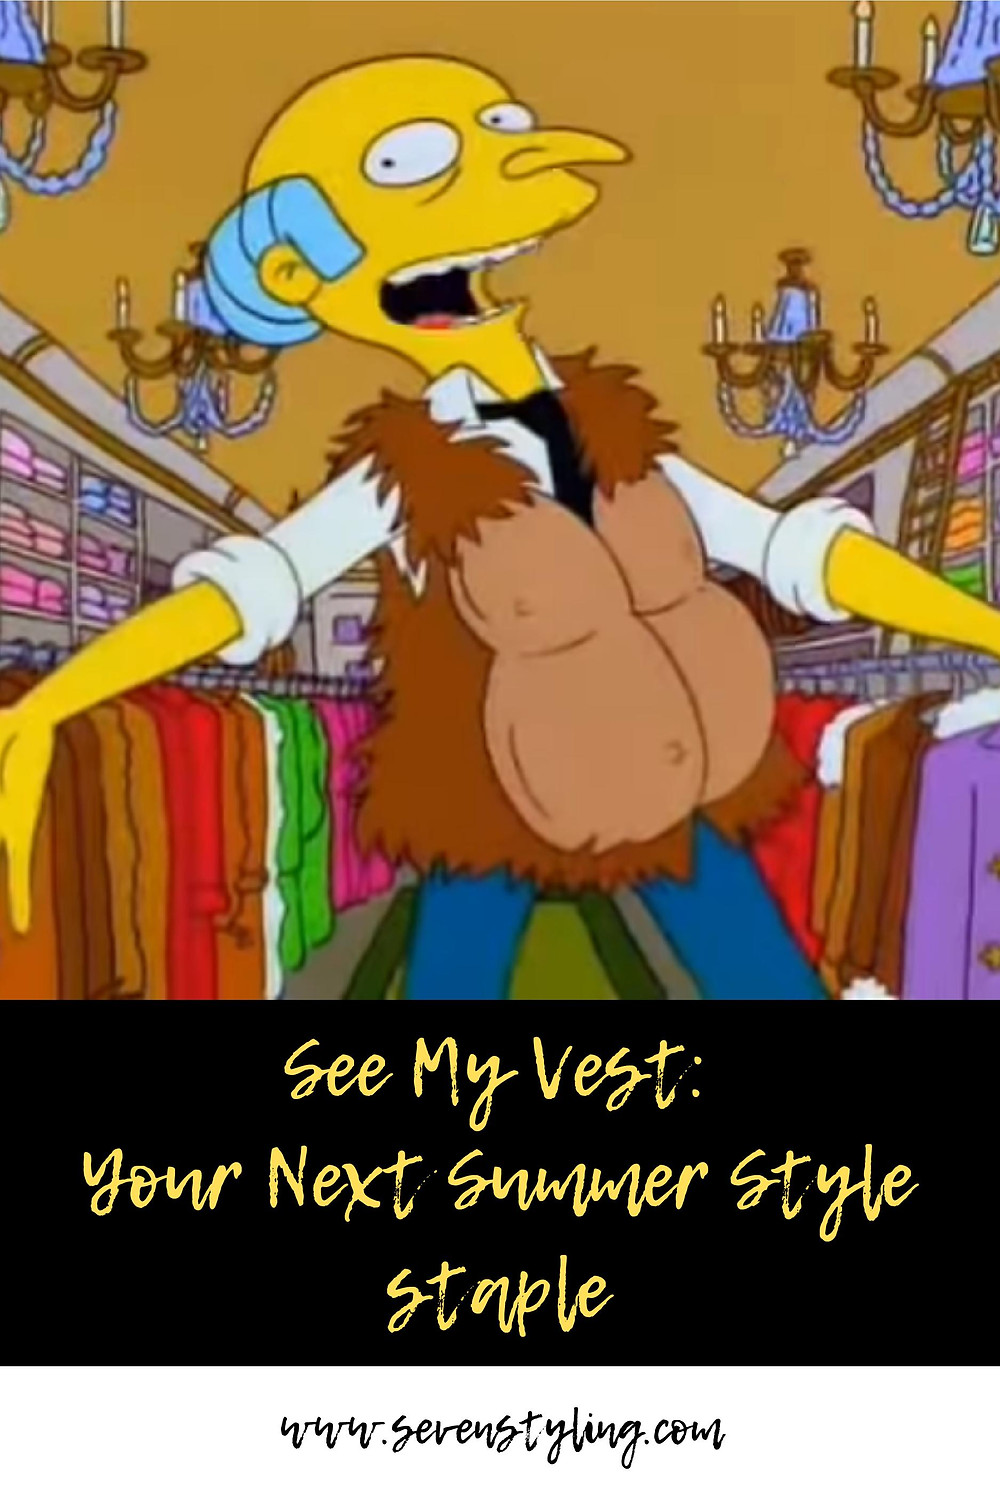 See My Vest: Your Next Summer Style Staple